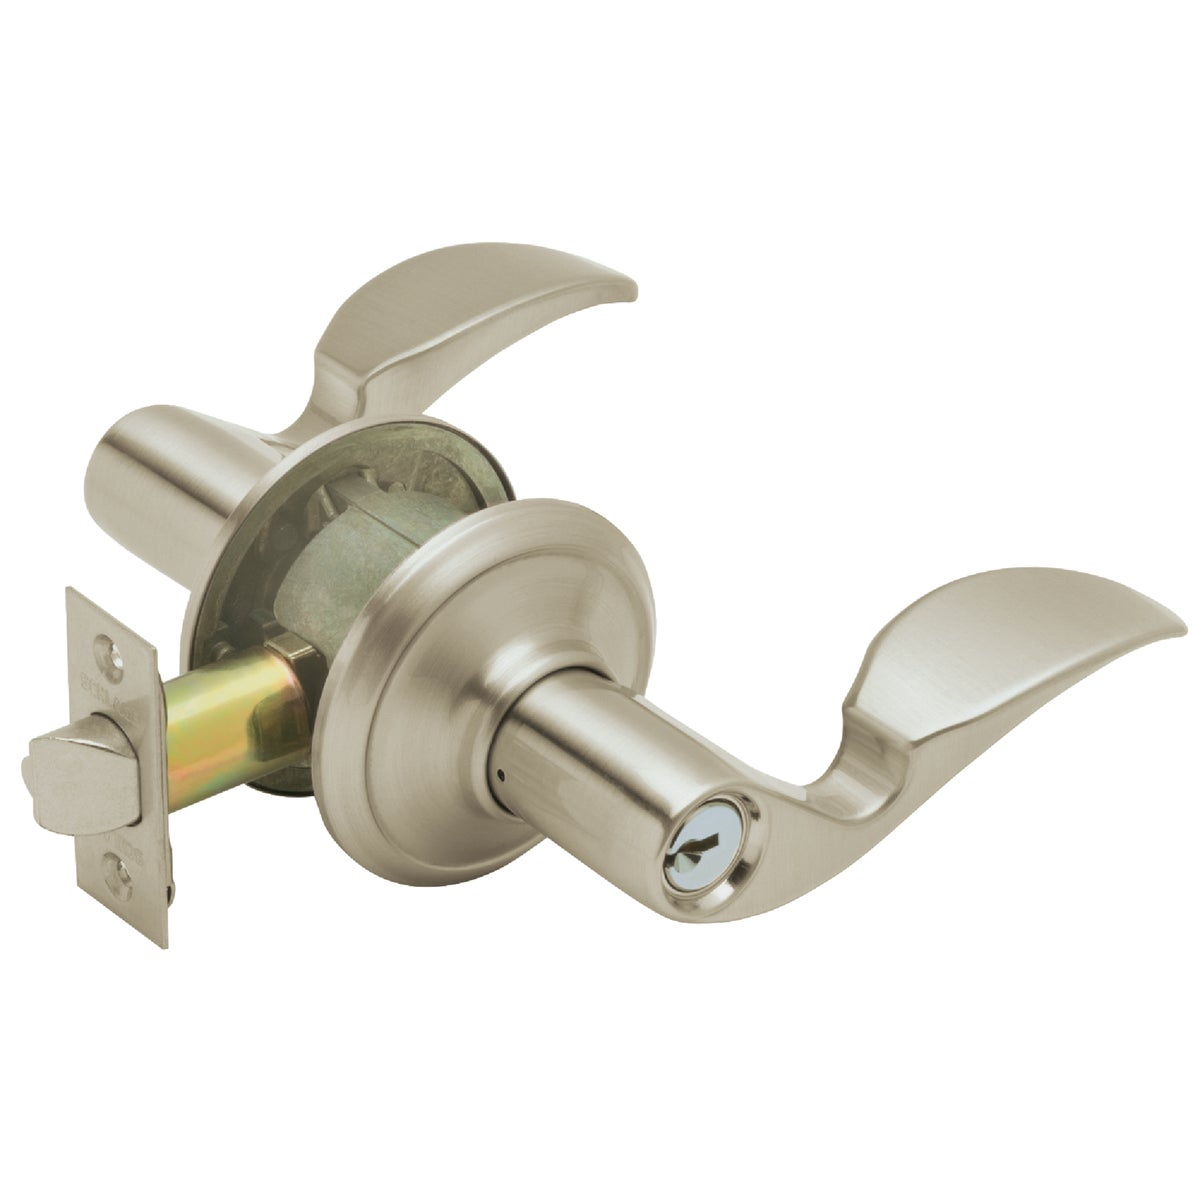 SN AVANTI ENTRY LEVER - F51VAVA619 by Schlage Lock Co